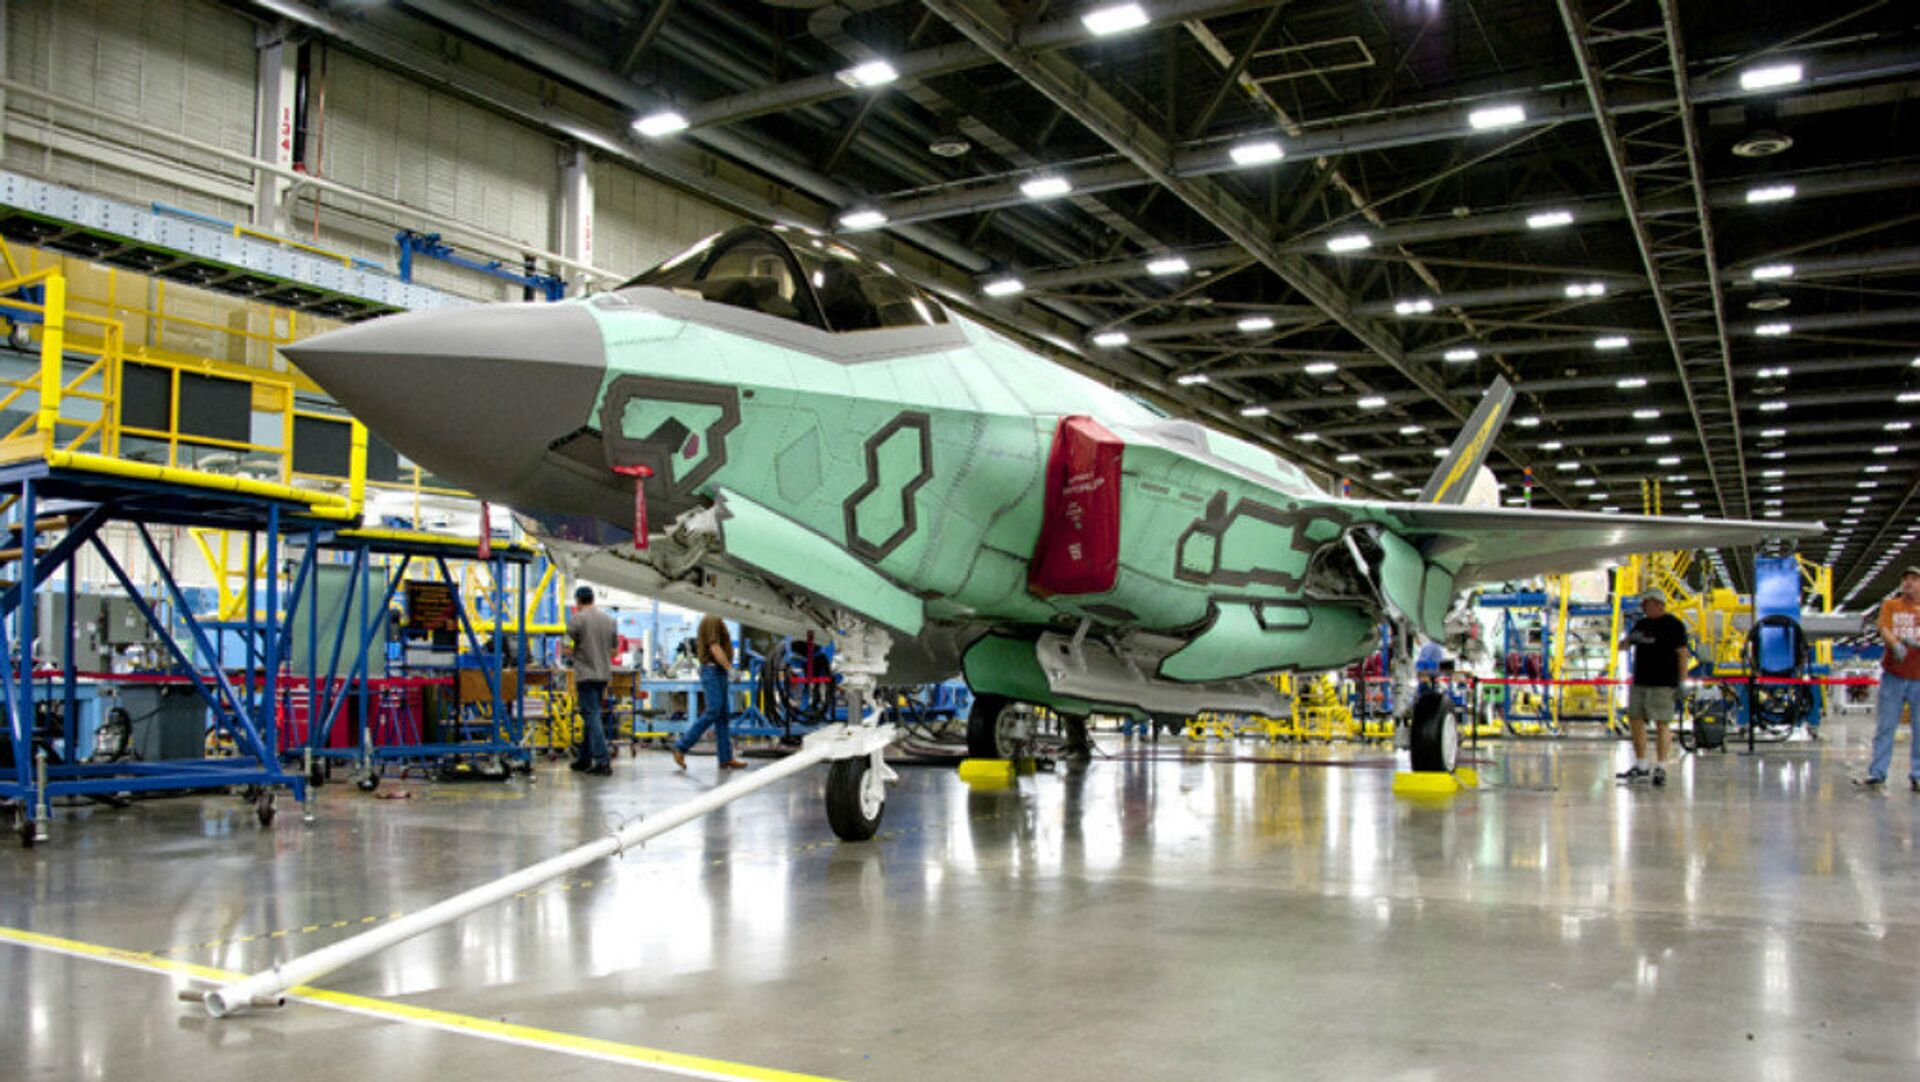 100th F-35 Rolls Out of the Factory - Sputnik International, 1920, 11.09.2021